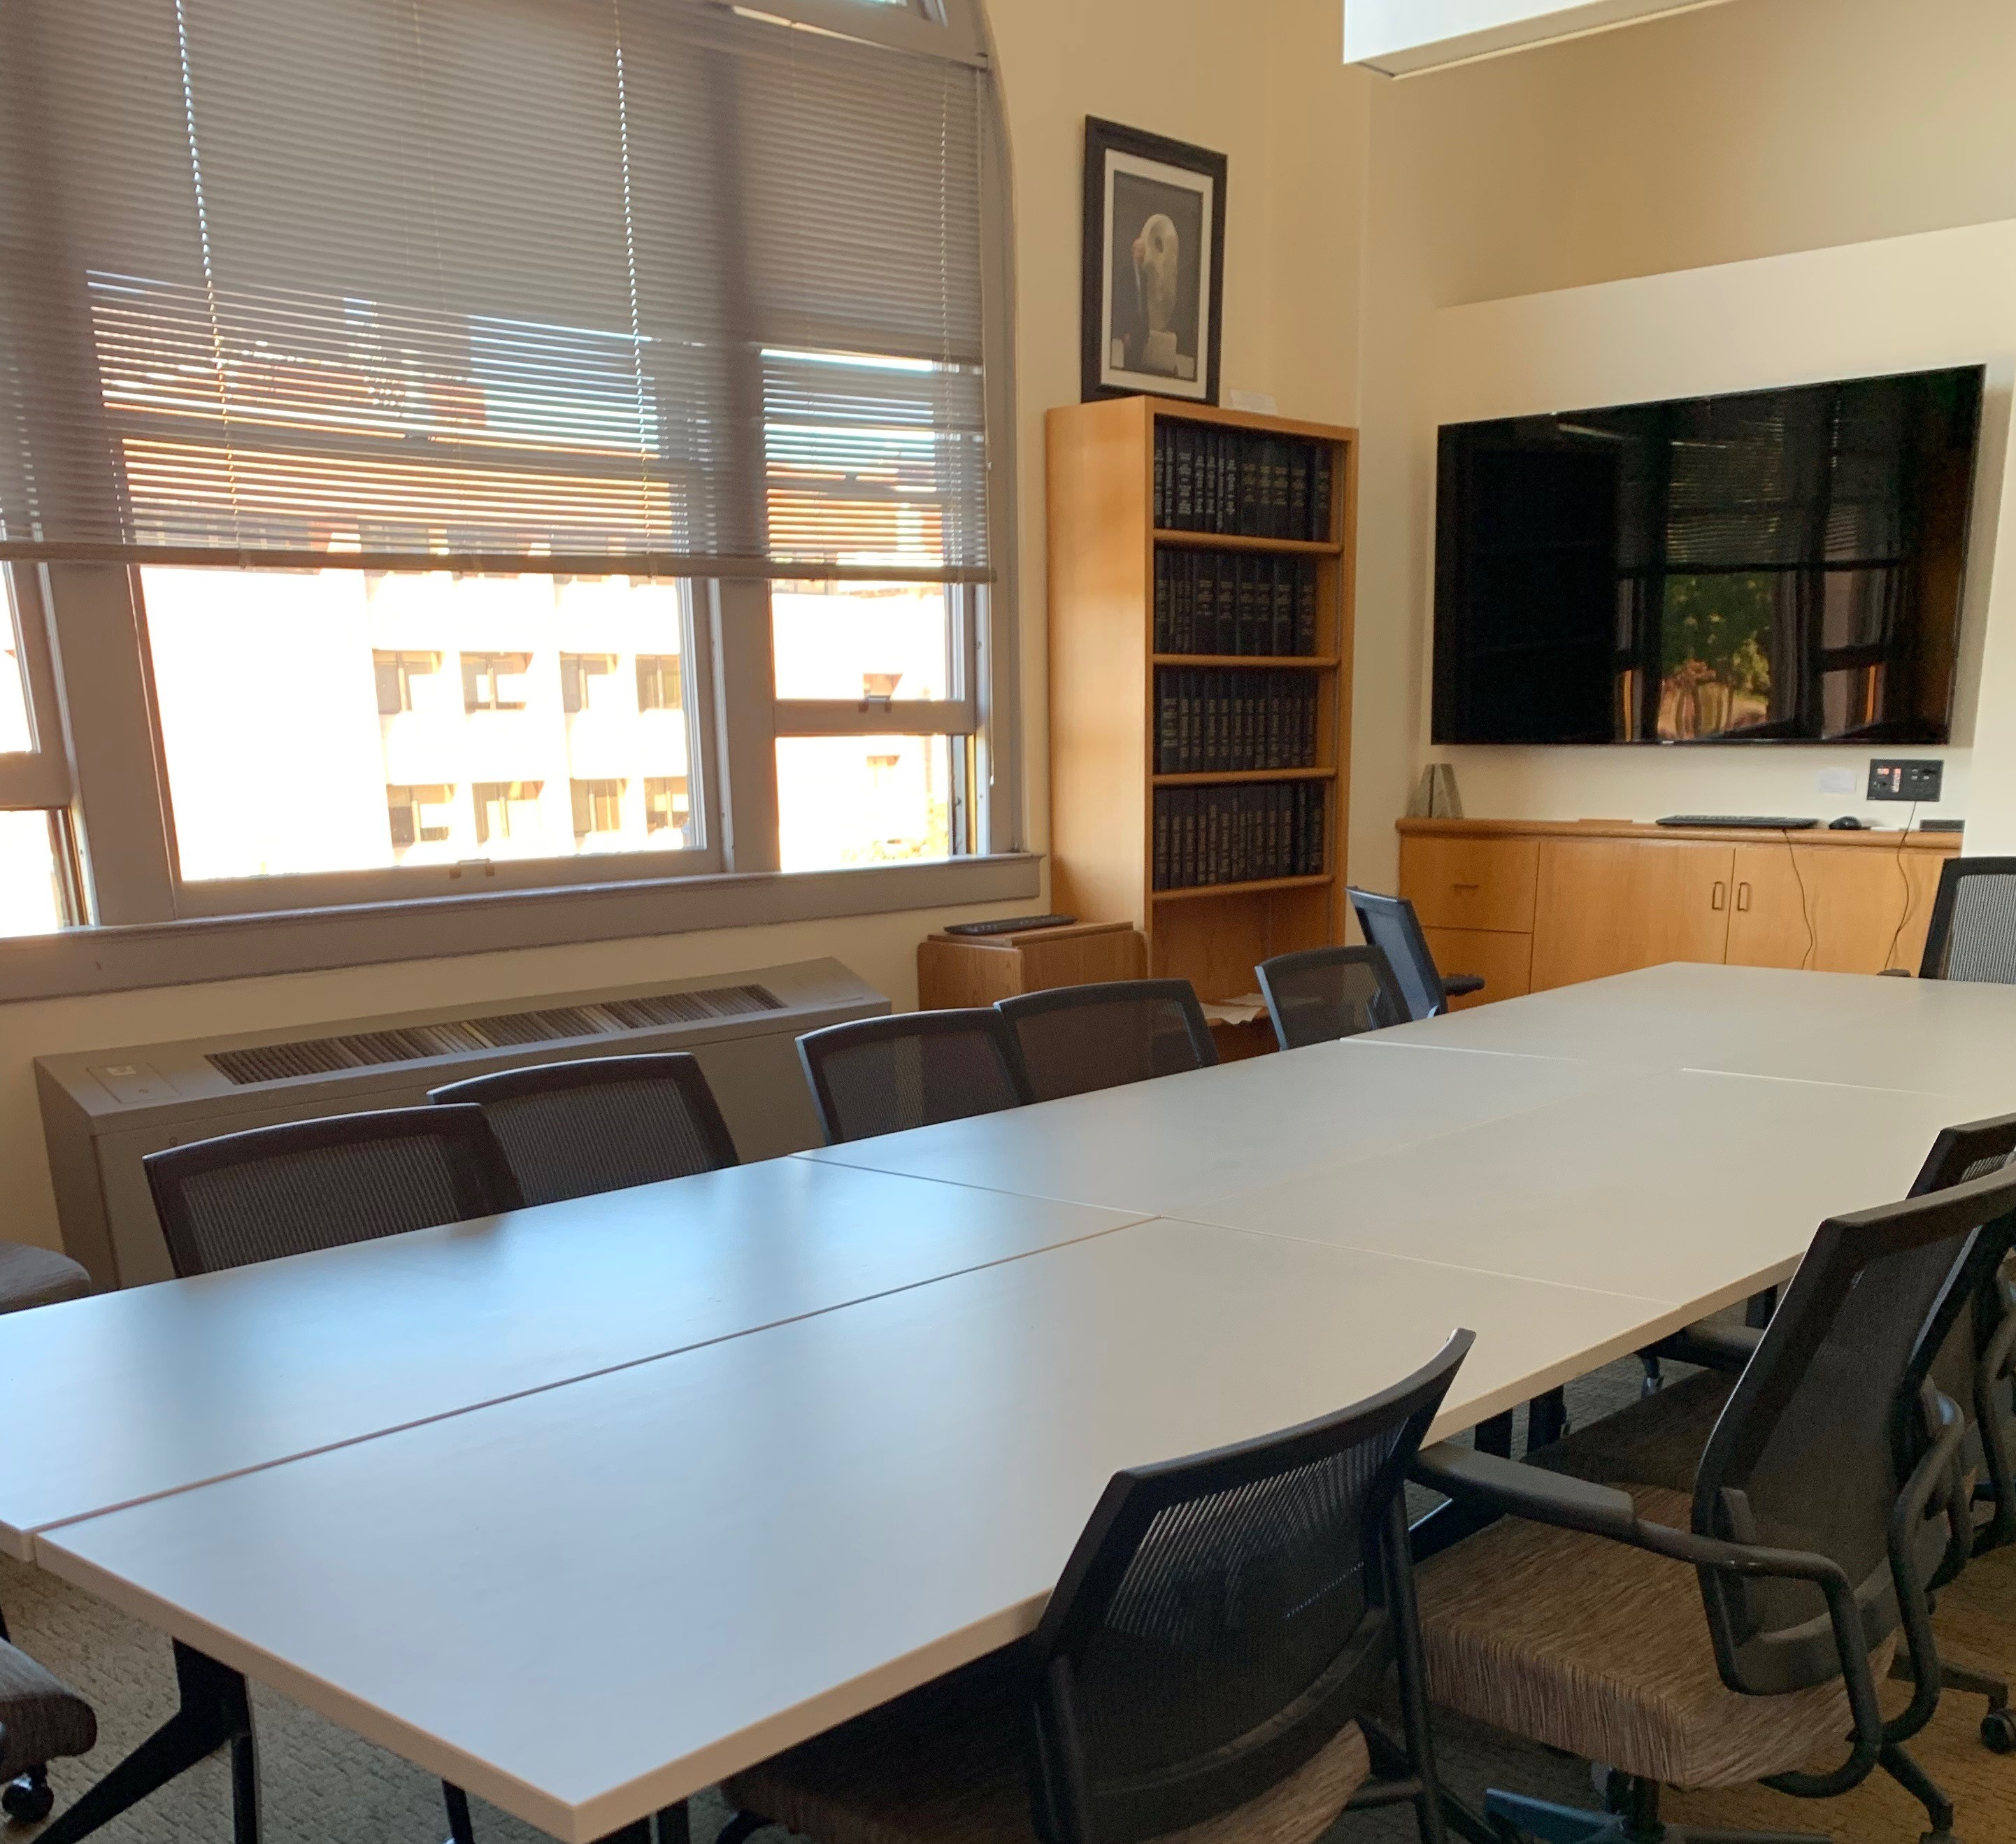 Picture of Honors library classroom